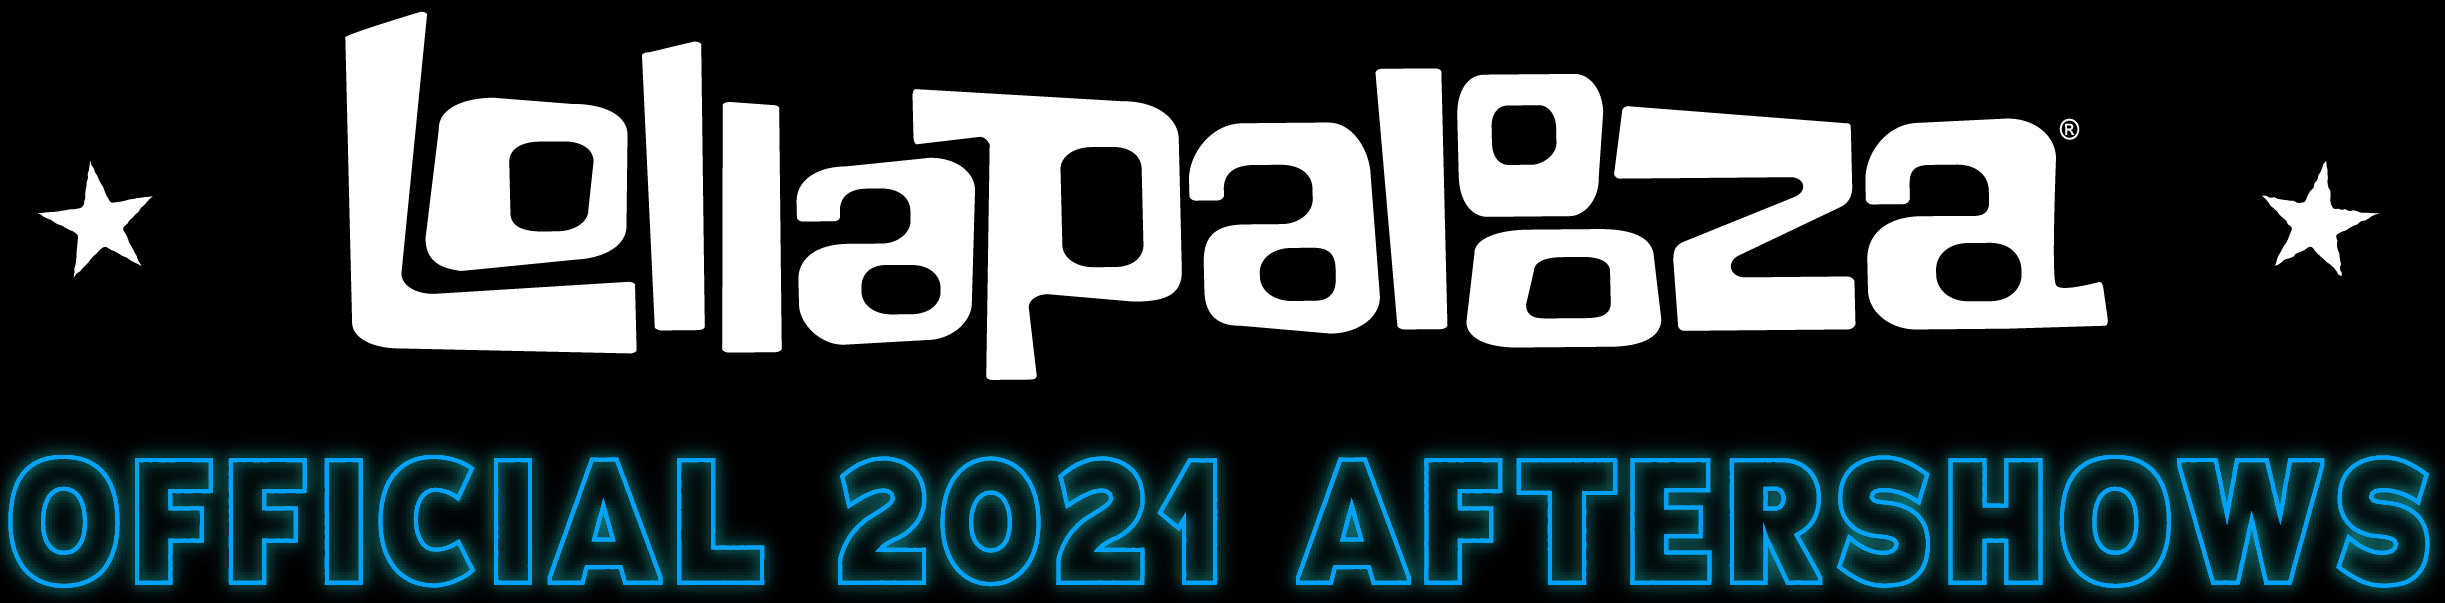 Lollapalooza Official 2021 Aftershows